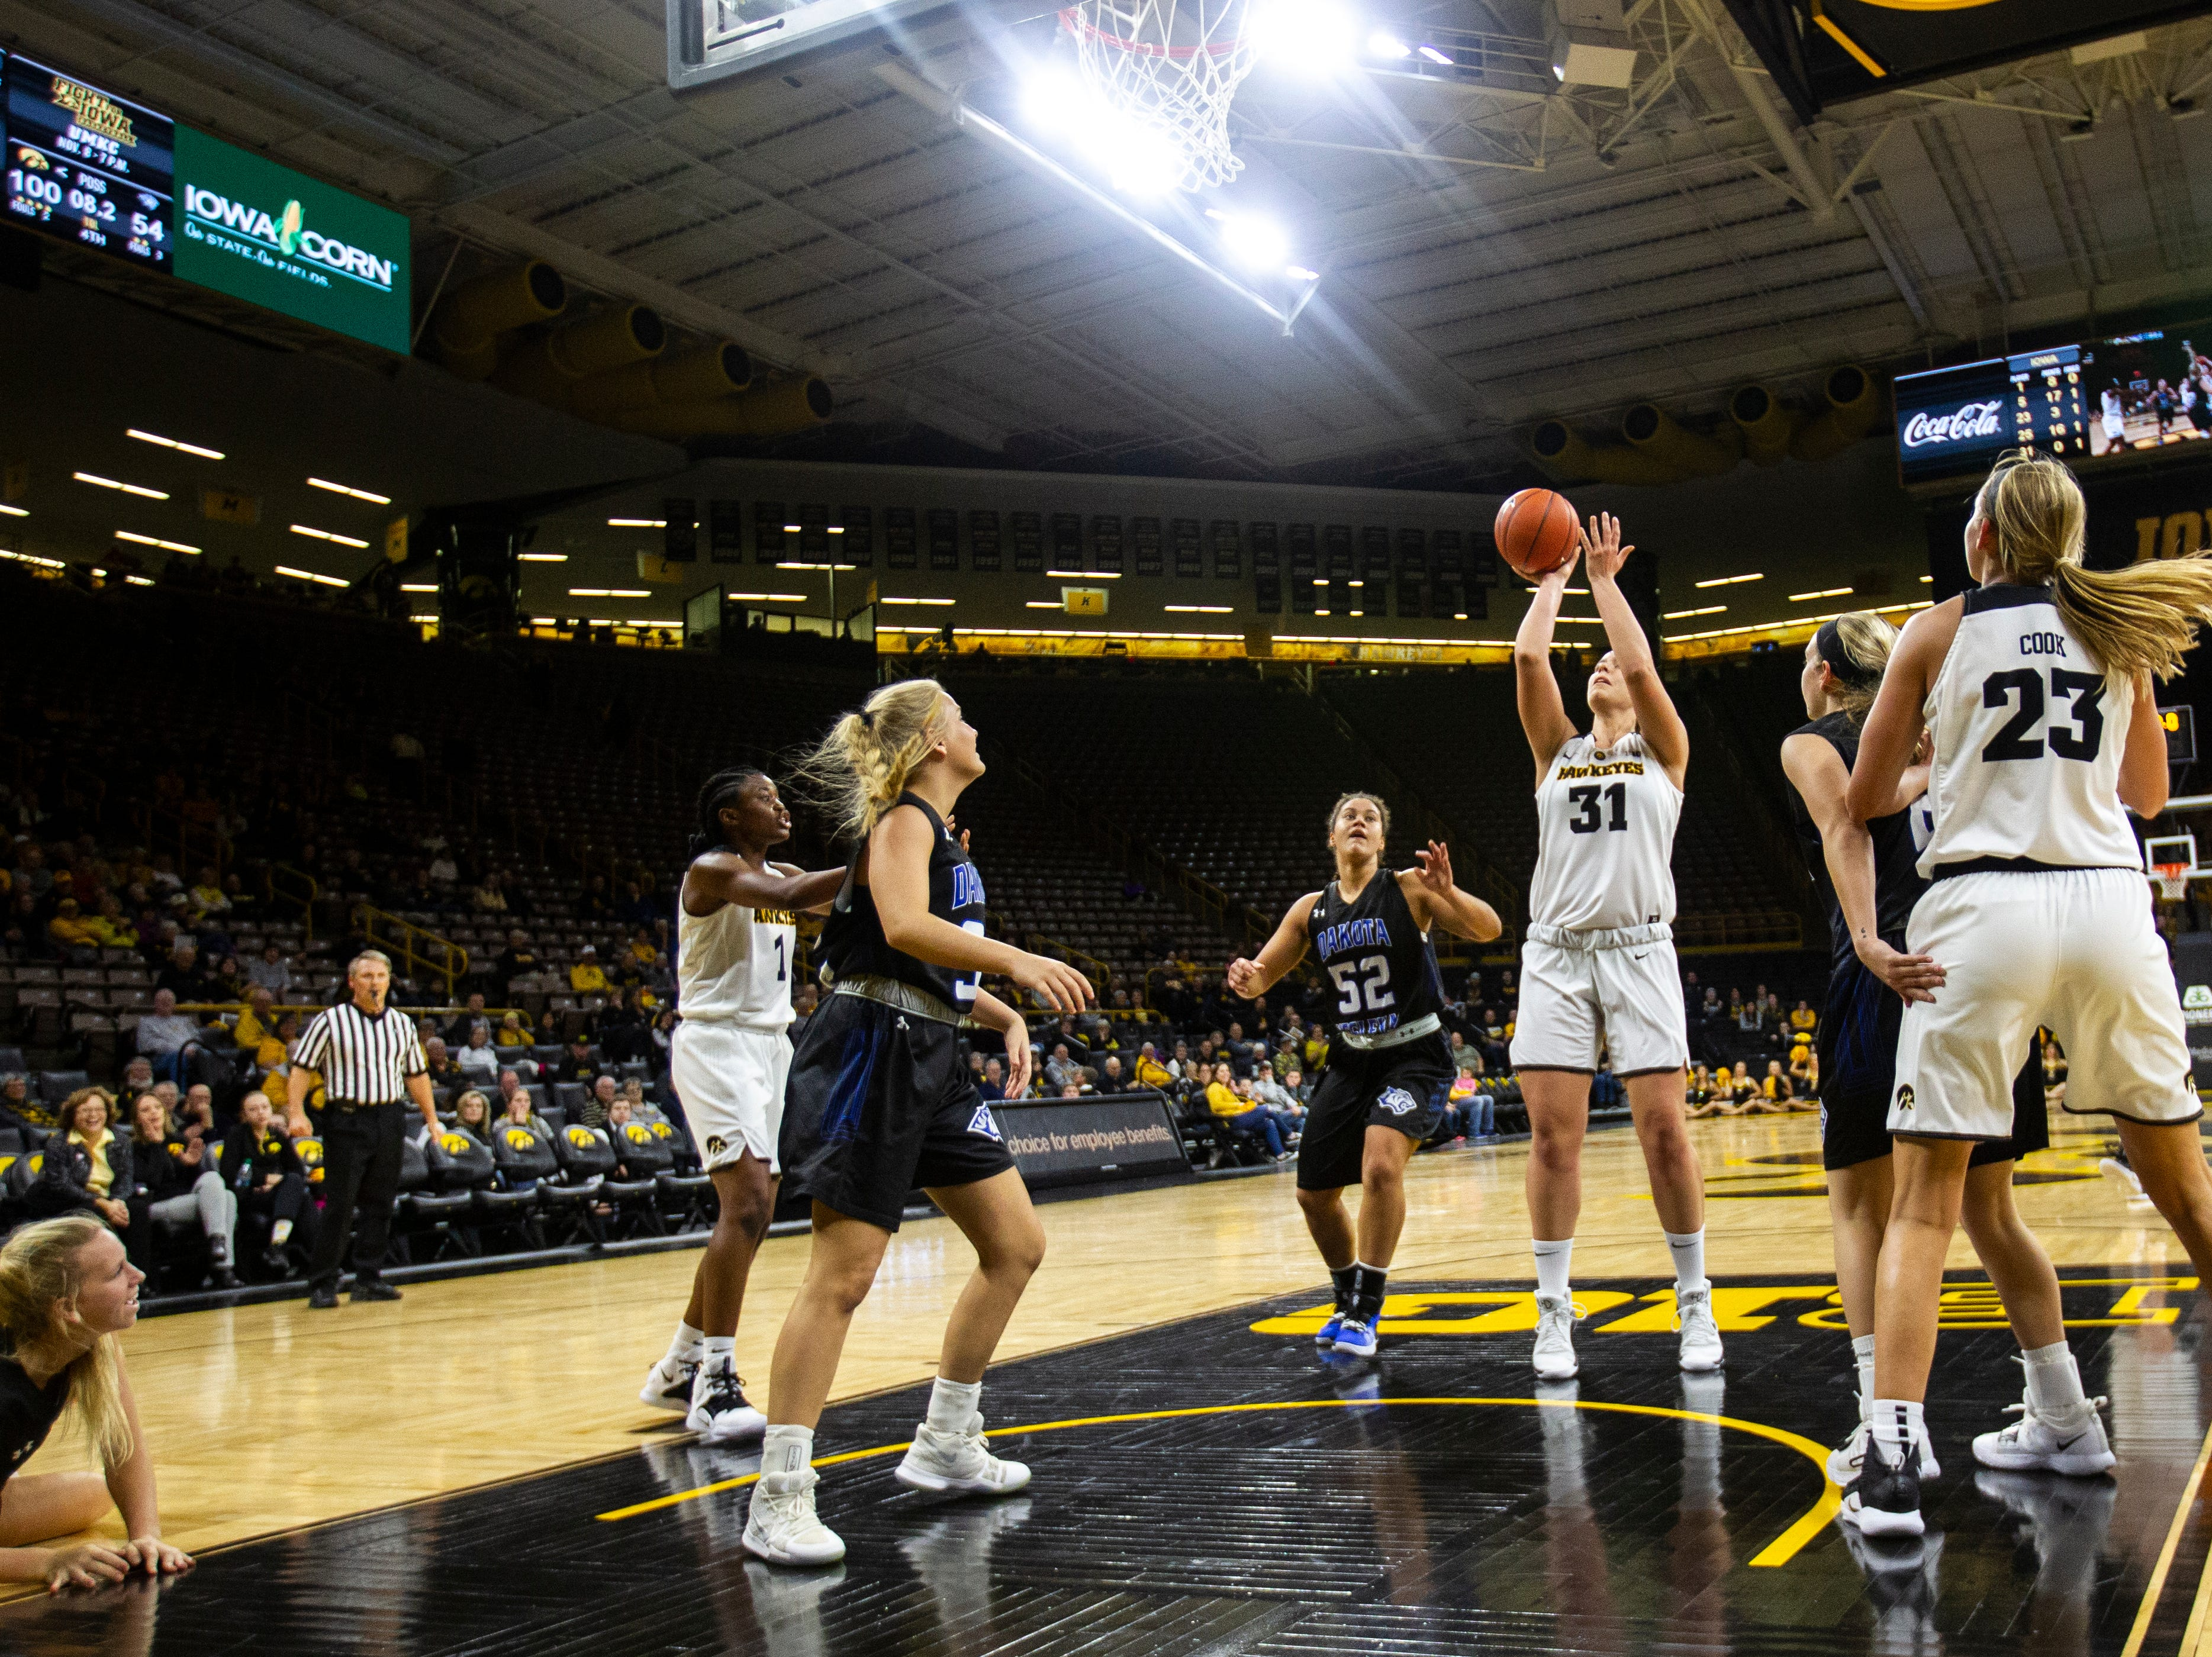 Iowa's Paula Valino Ramos (31) attempts a shot during a women's basketball exhibition basketball game on Tuesday, Nov. 6, 2018, at Carver-Hawkeye Arena in Iowa City.